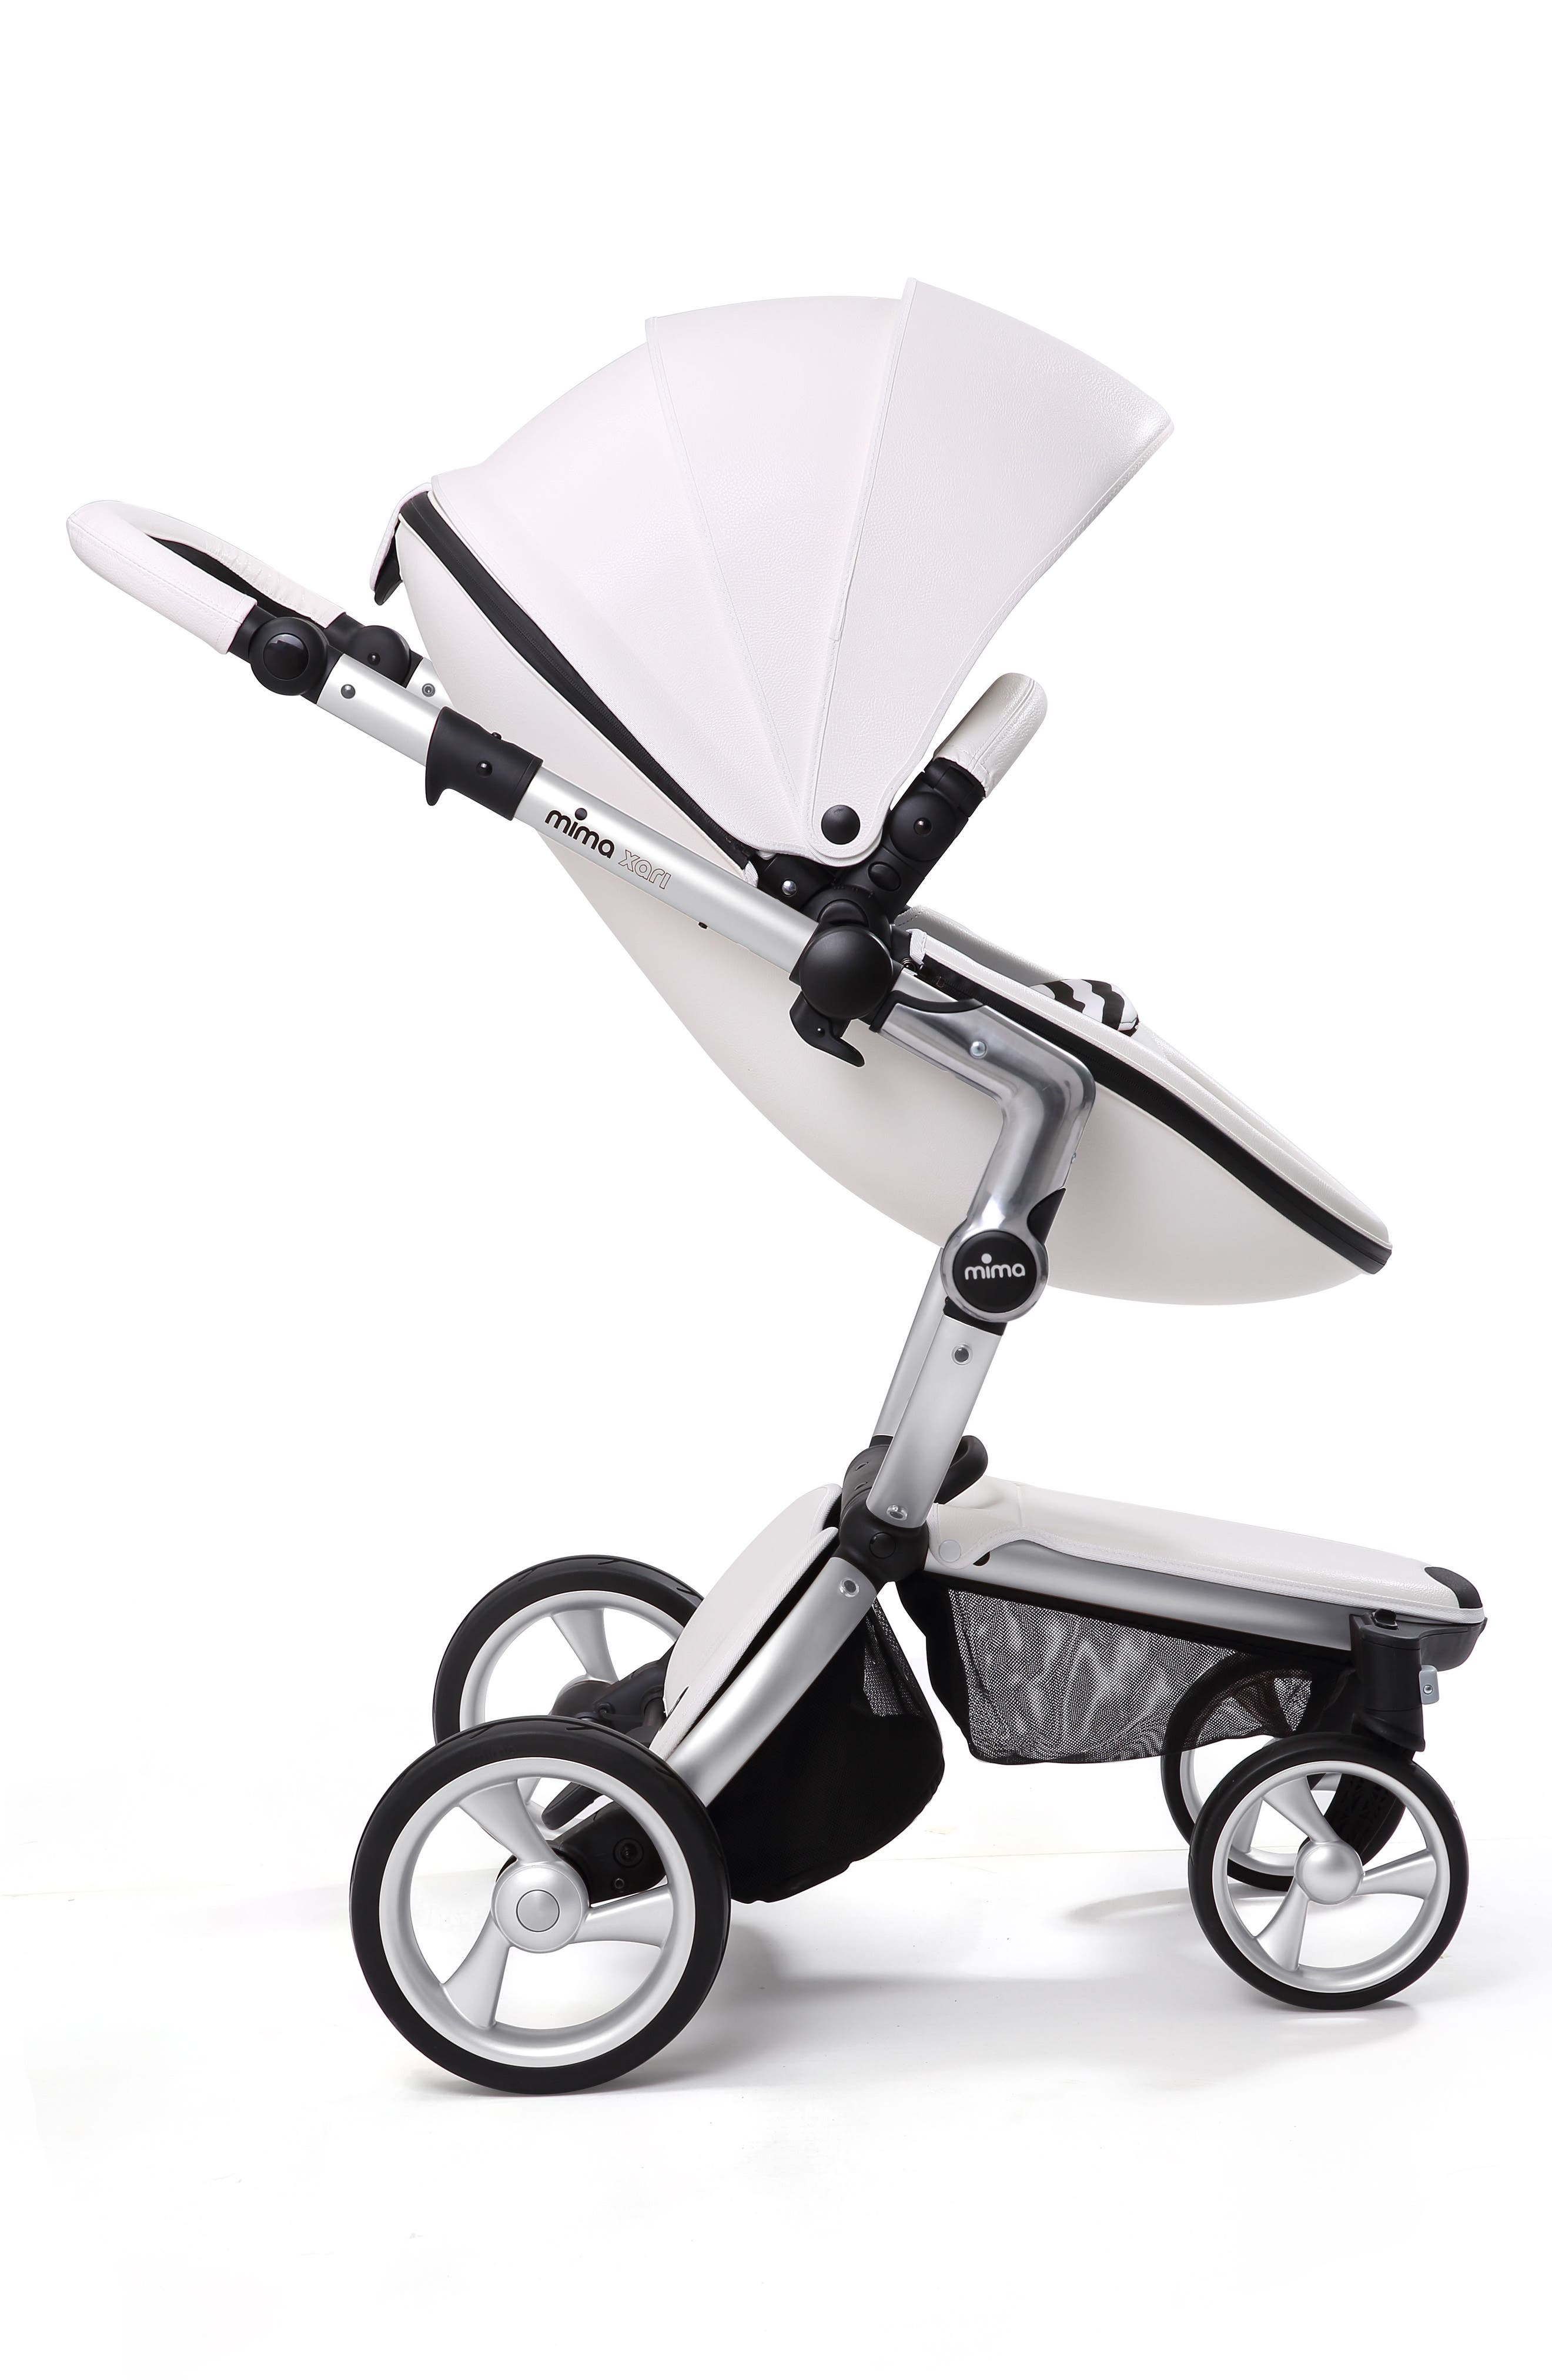 Xari Aluminum Chassis Stroller with Reversible Reclining Seat & Carrycot,                             Alternate thumbnail 5, color,                             Black / Black And White